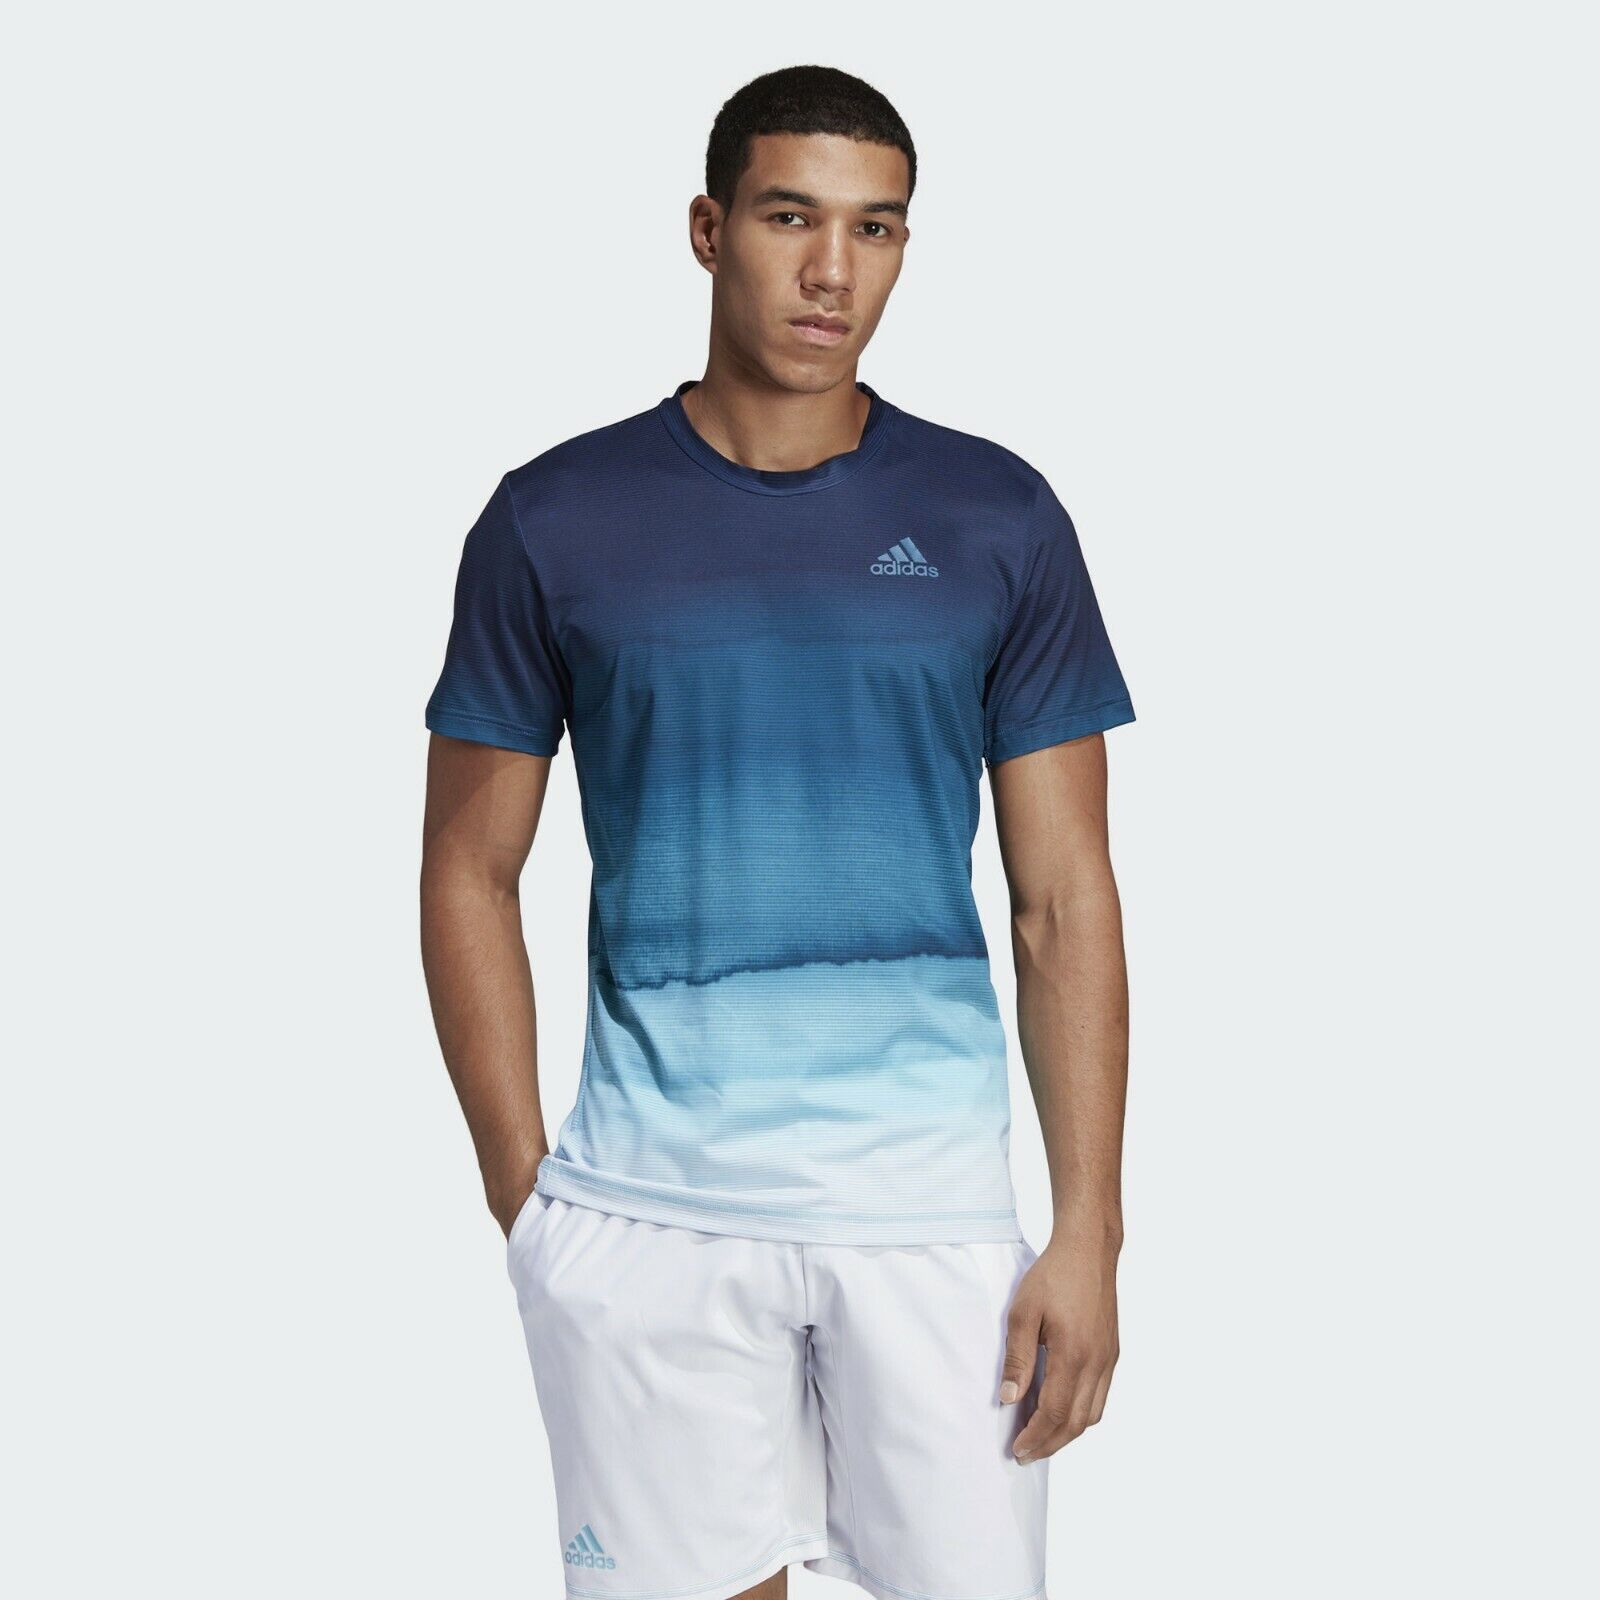 Adidas Parley Printed Tee Mens Weiß Ombre Active Wear T-Shirt DP0287